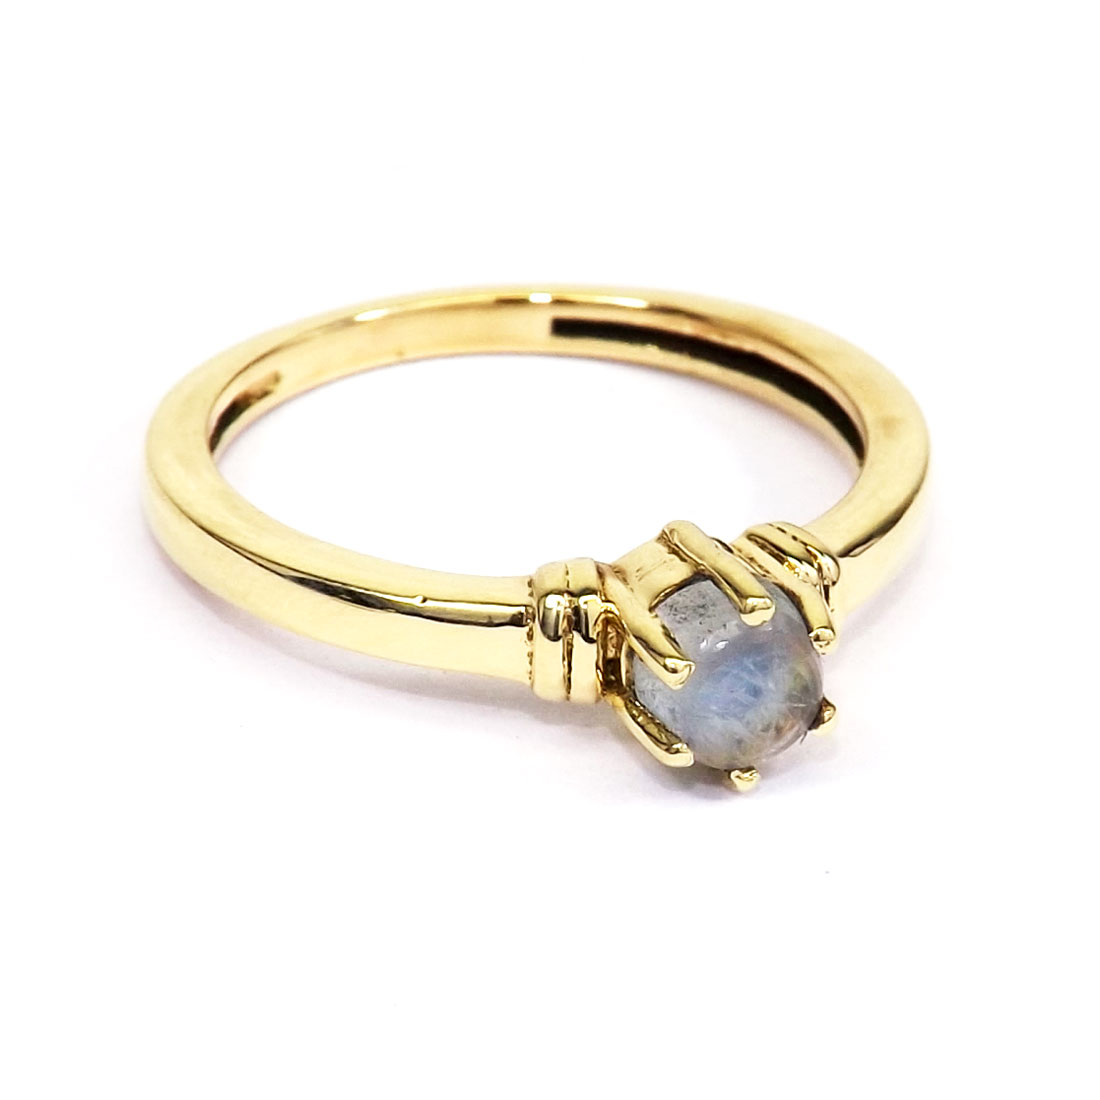 Rainbow Moonstone Cab B - CBR981-Wholesale Brass Gemstone Designer Fashion Casting Rings